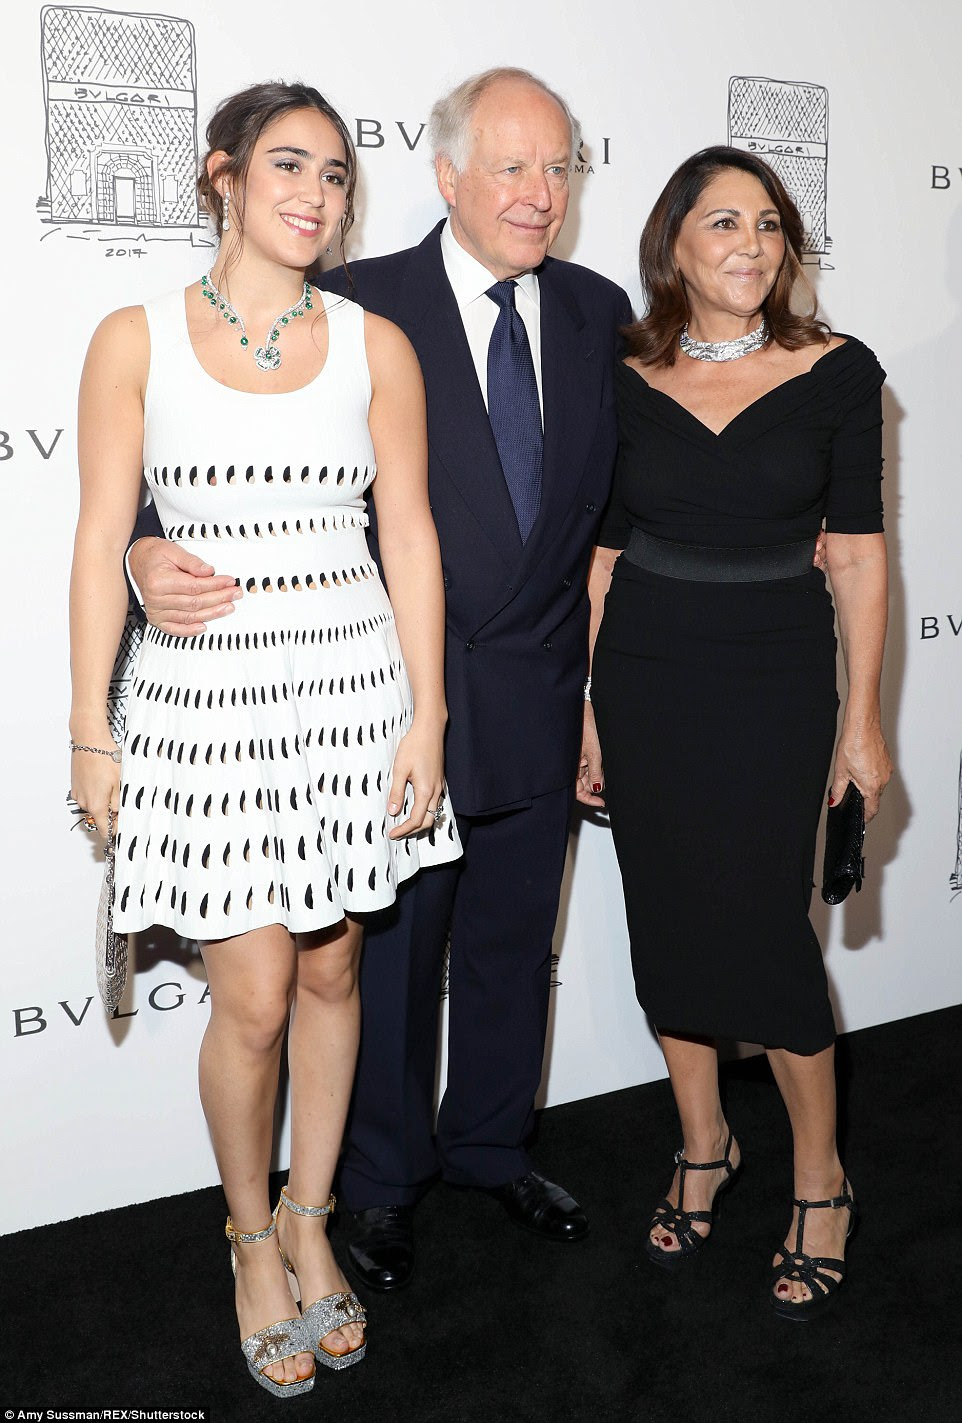 Family affair: Ginevra, Beatrice, and Nicola Bulgari were also at the event to celebrate their fashion house's new store